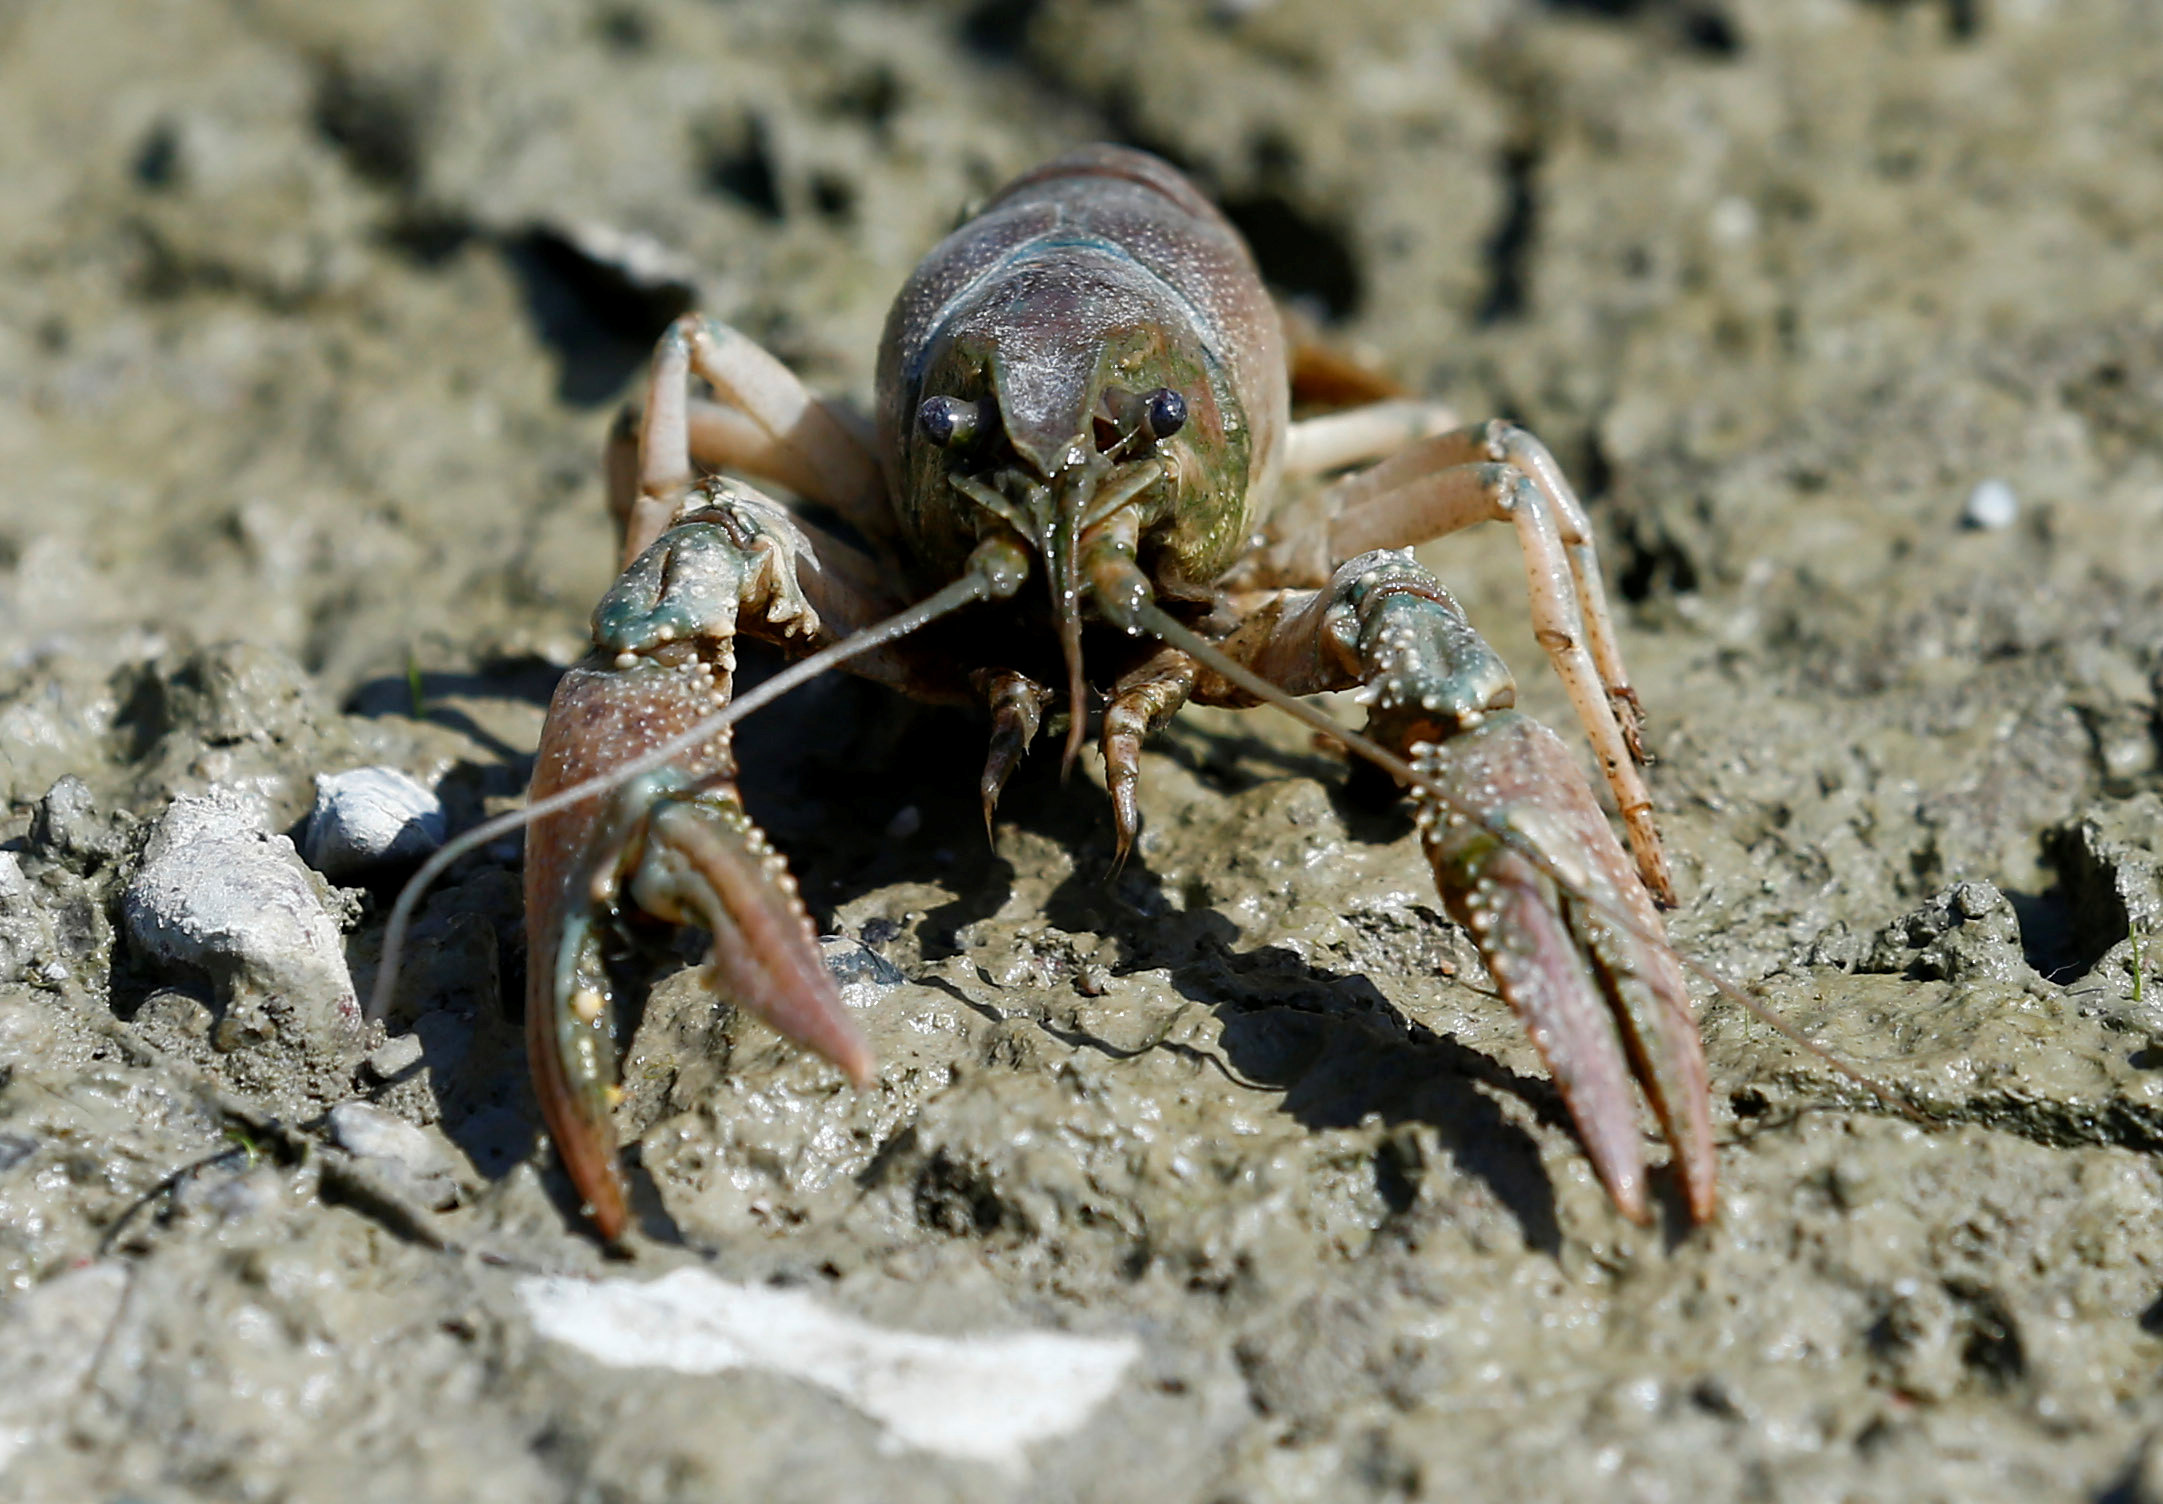 A calico crayfish (Orconectes immunis) is pictured in Rheinstetten